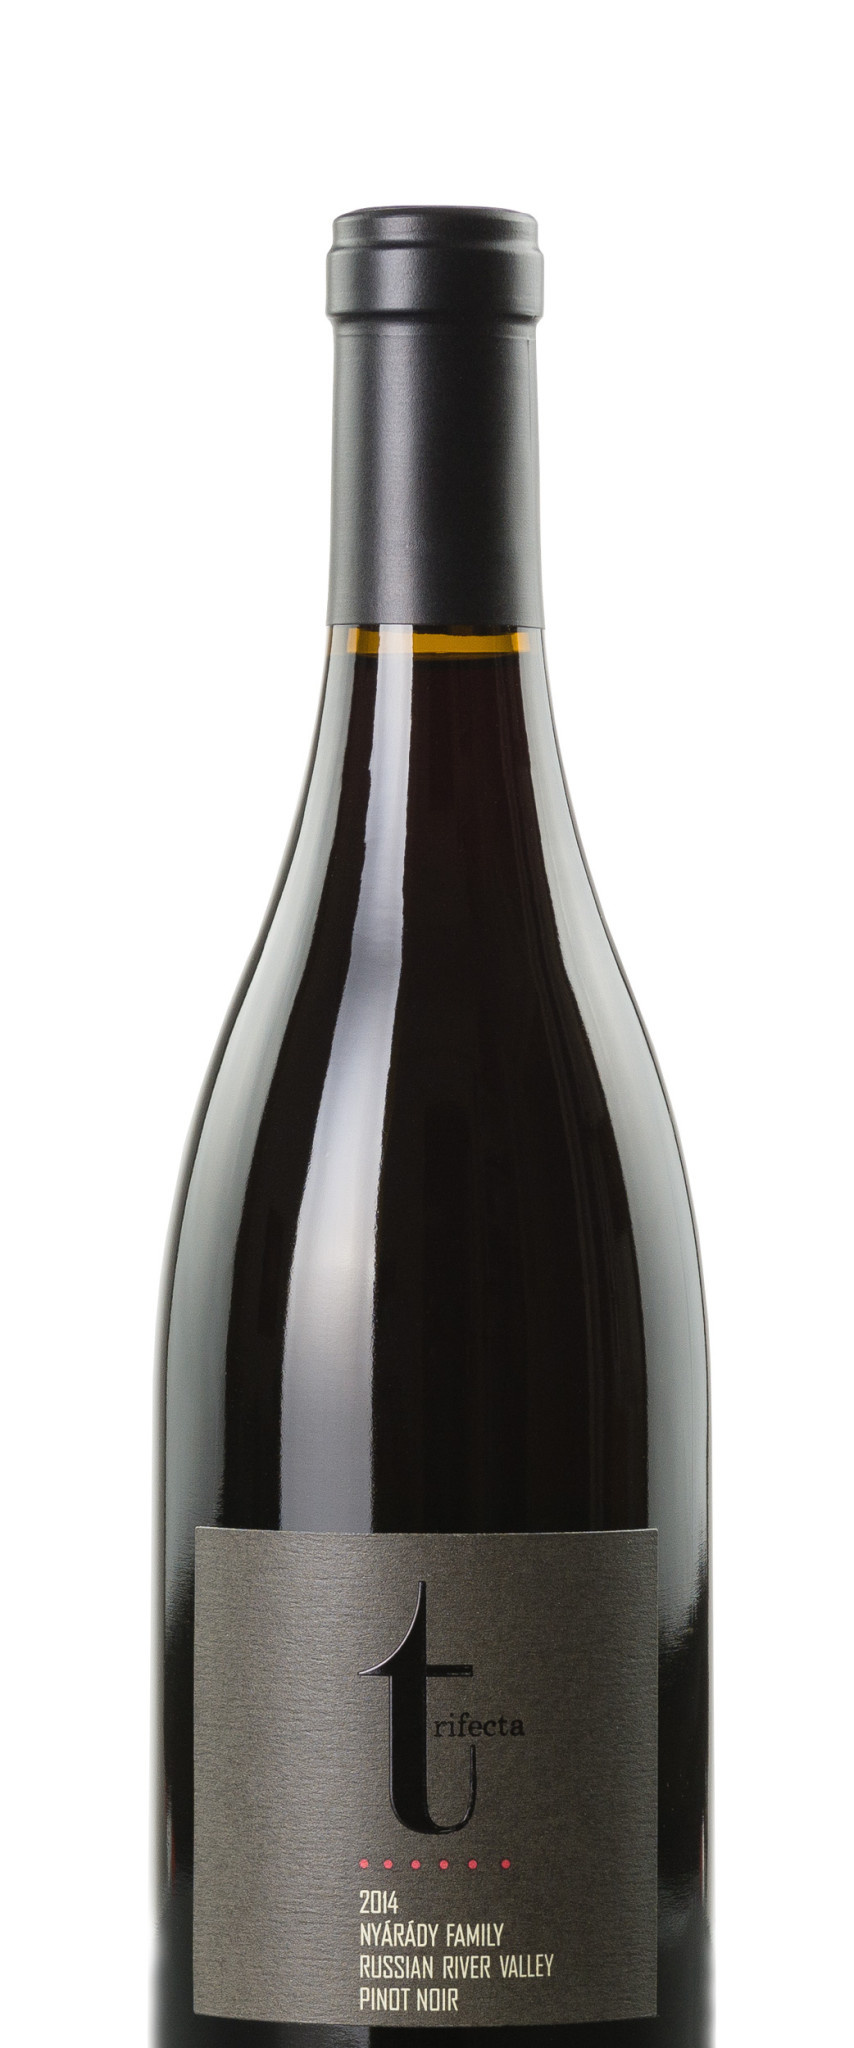 Trifecta Pinot Noir 2014 - 750ml